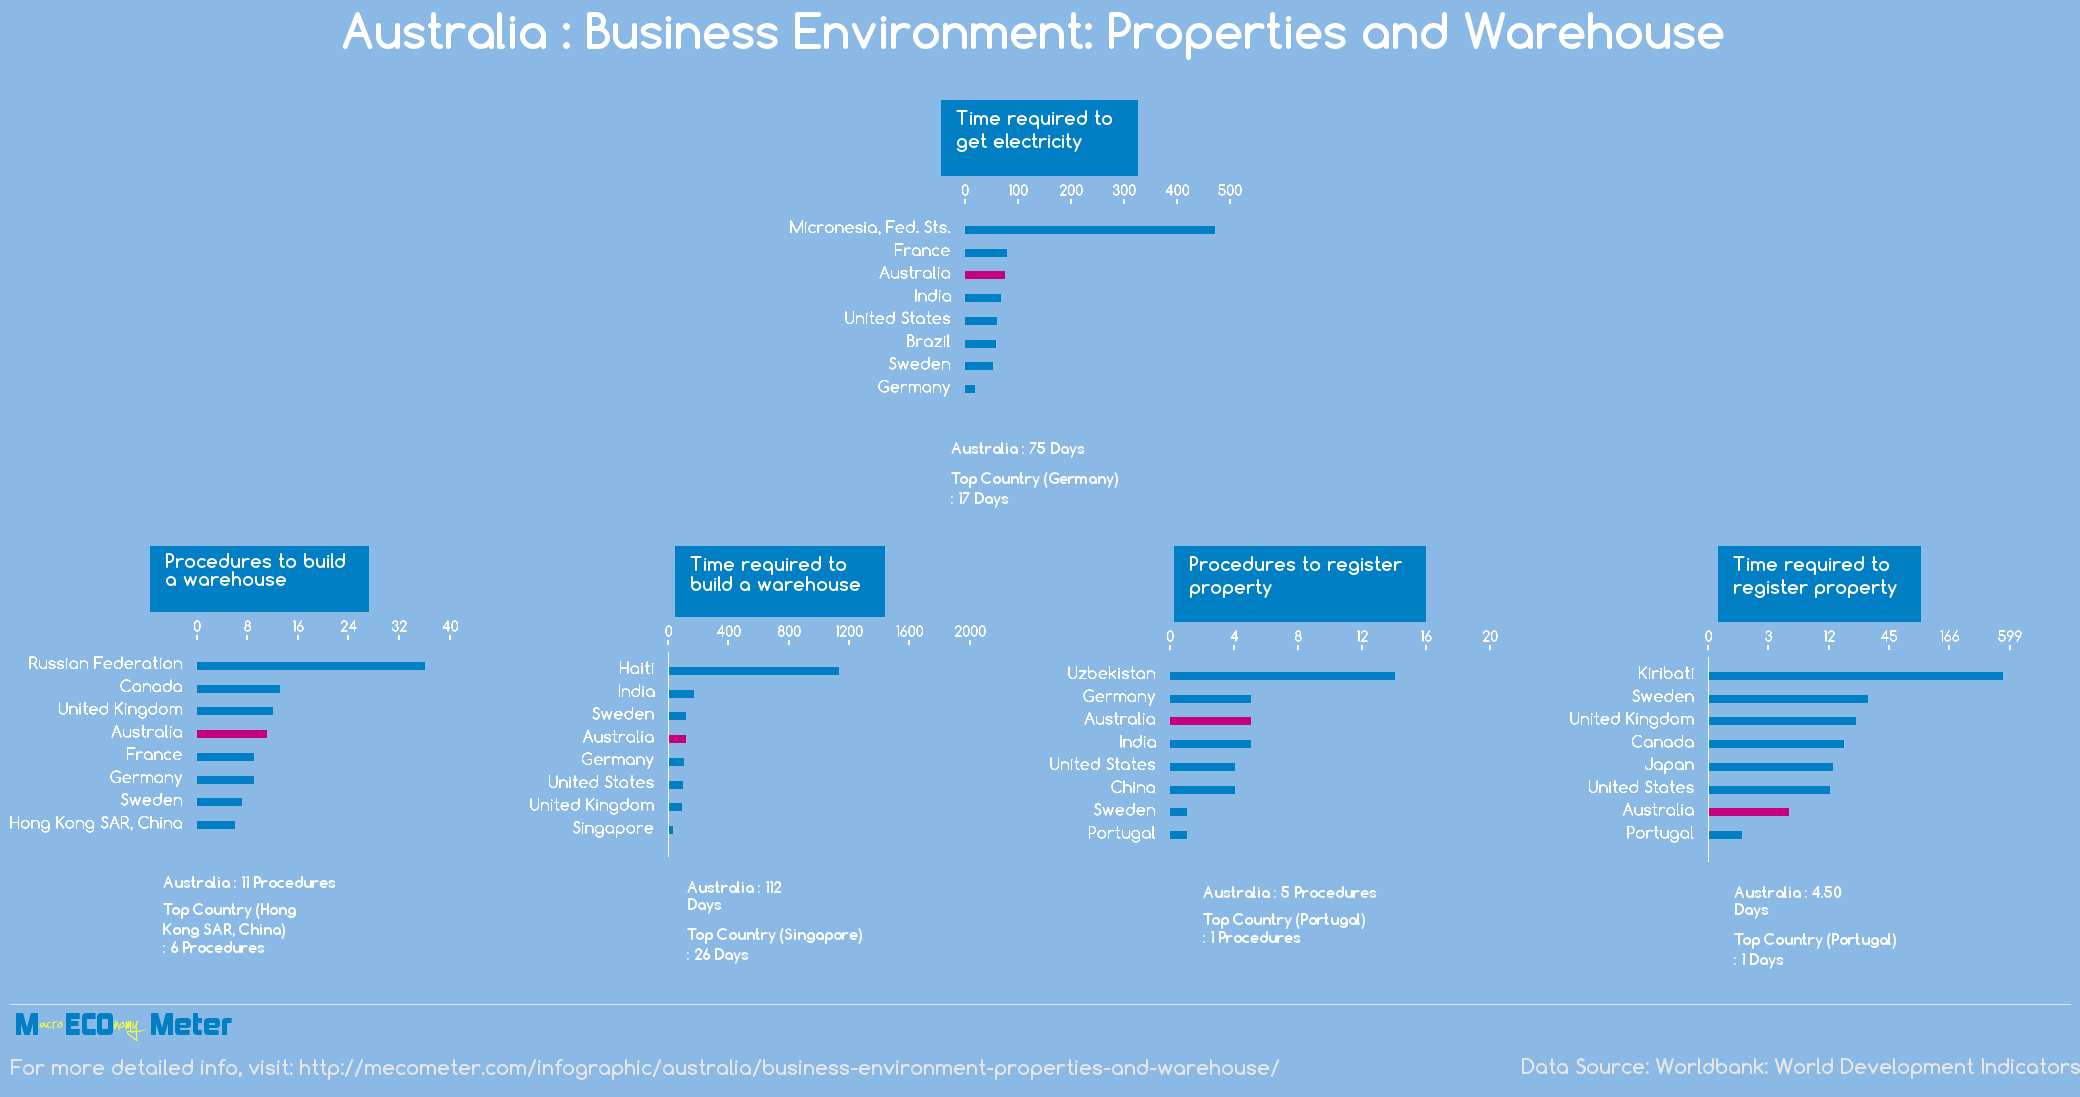 Australia : Business Environment: Properties and Warehouse